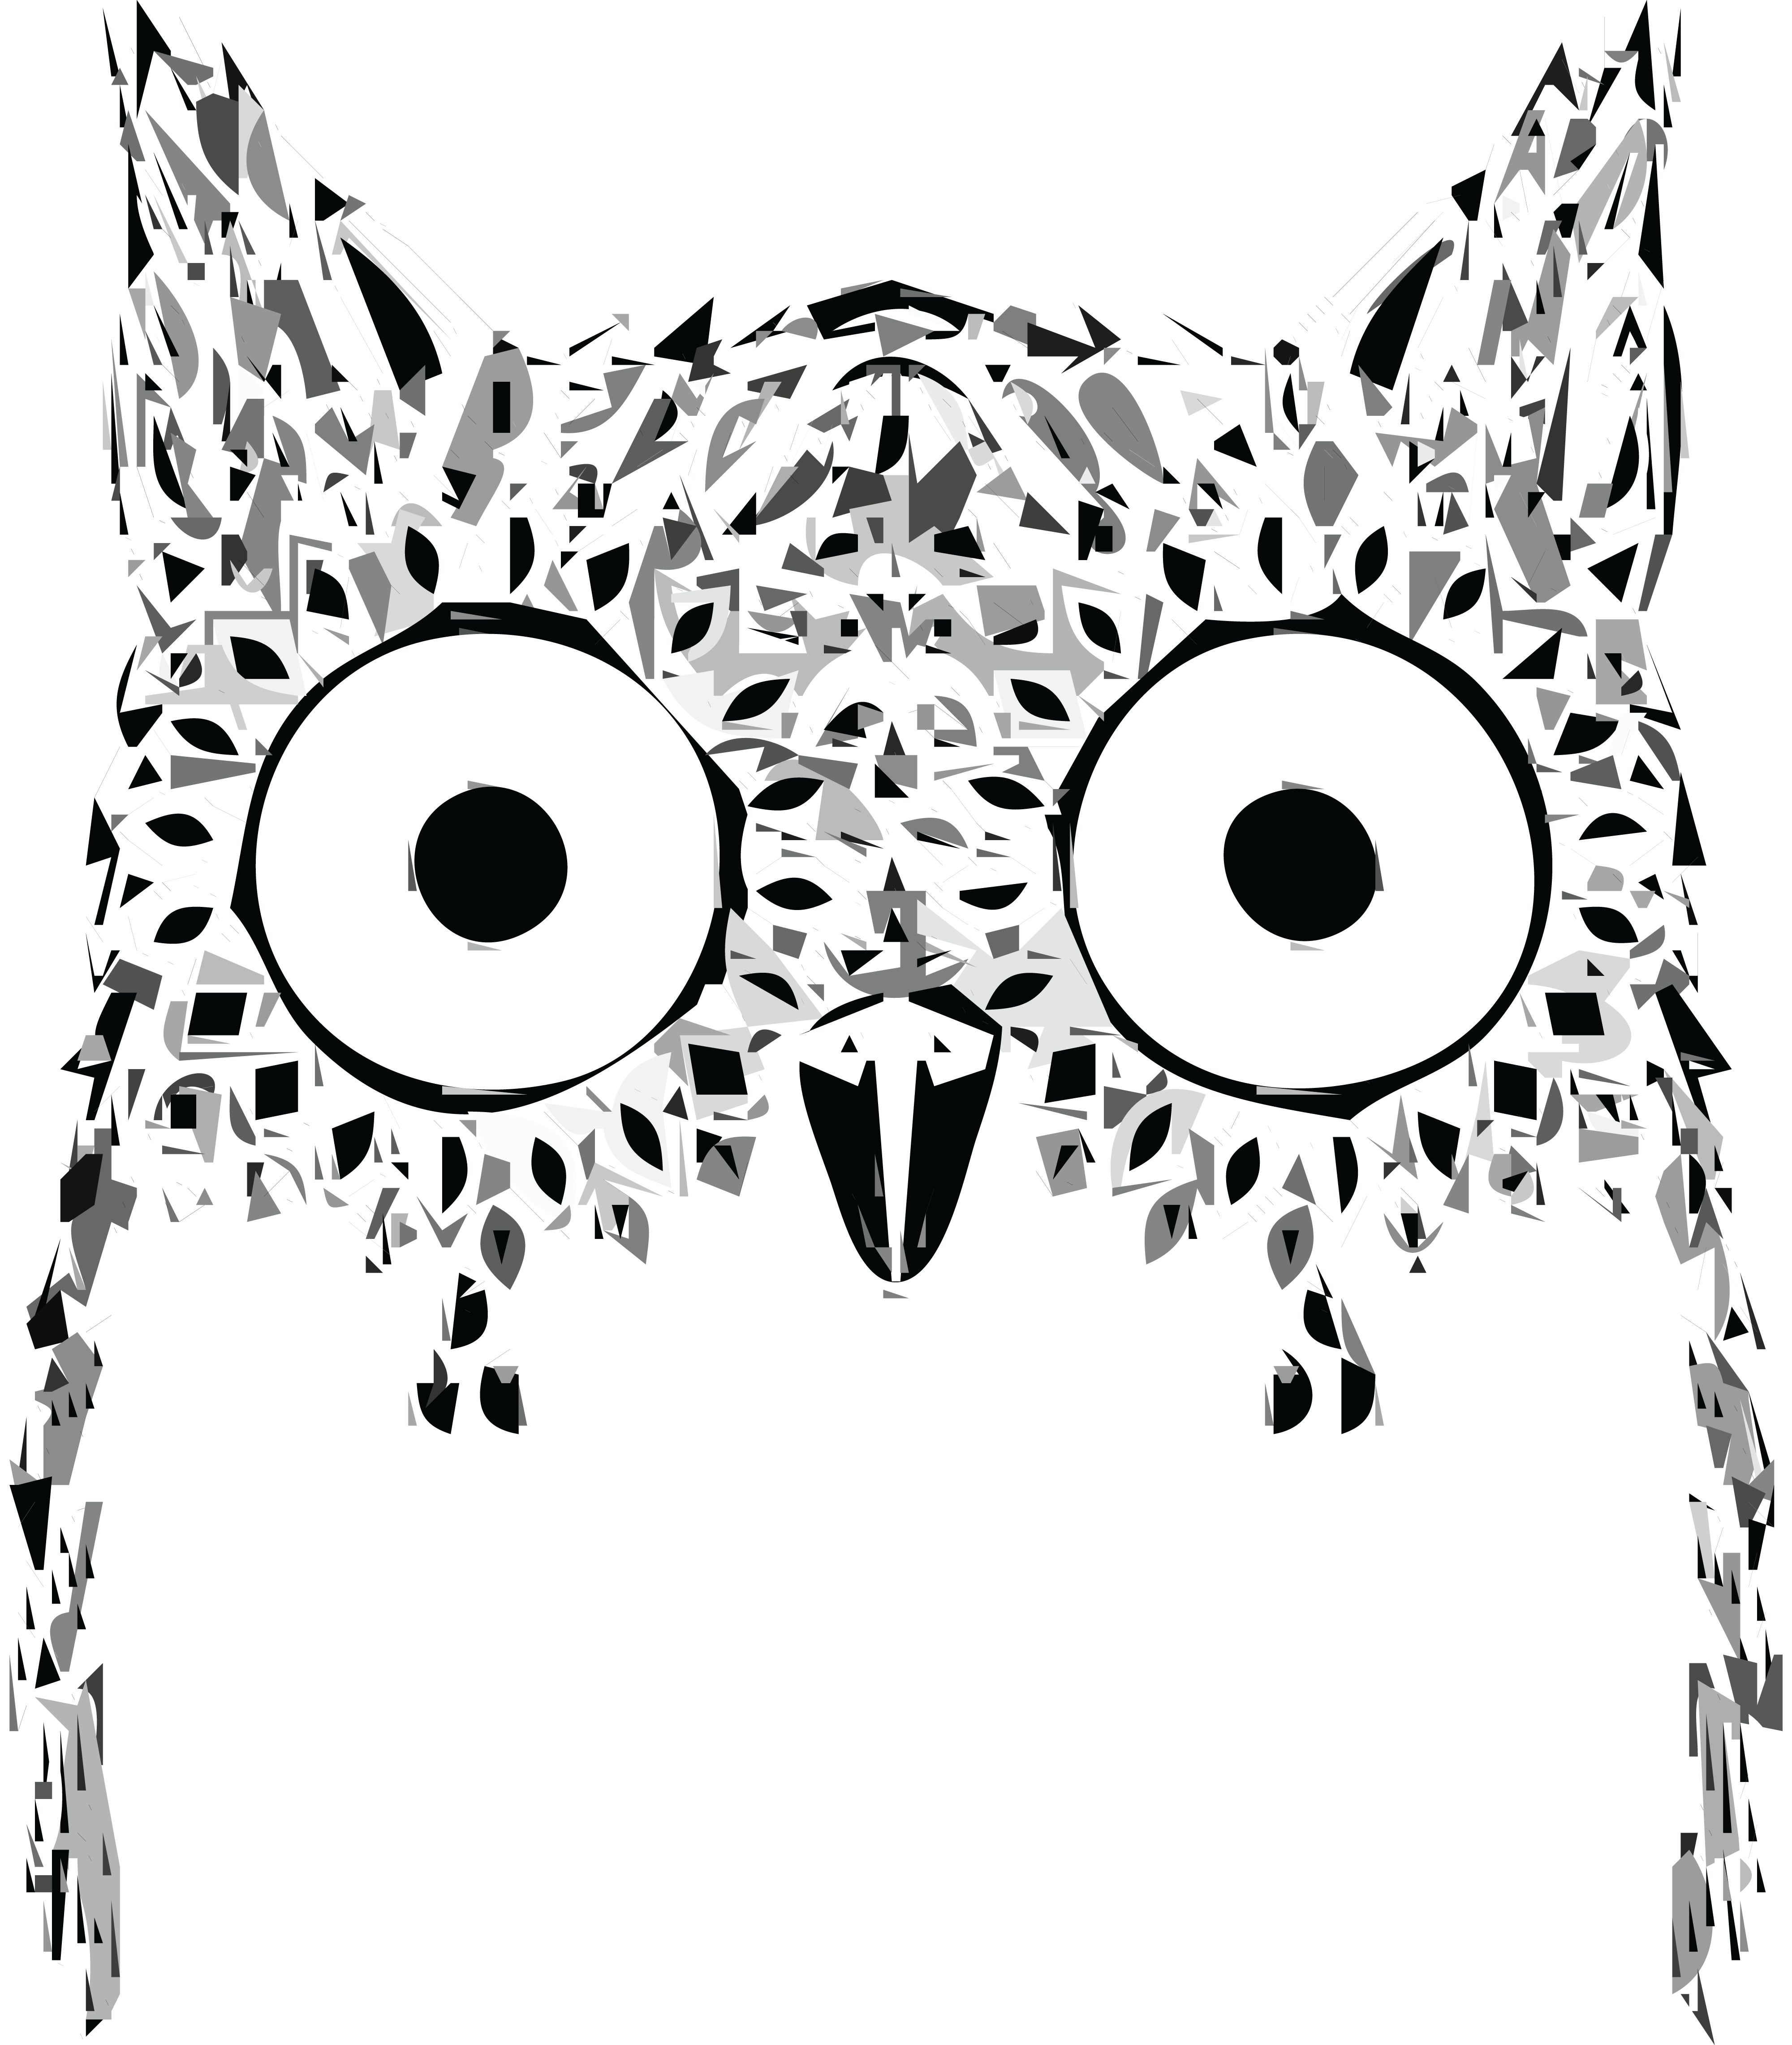 School owl clipart black and white jpg royalty free download Owl Face Drawing at GetDrawings.com | Free for personal use Owl Face ... jpg royalty free download